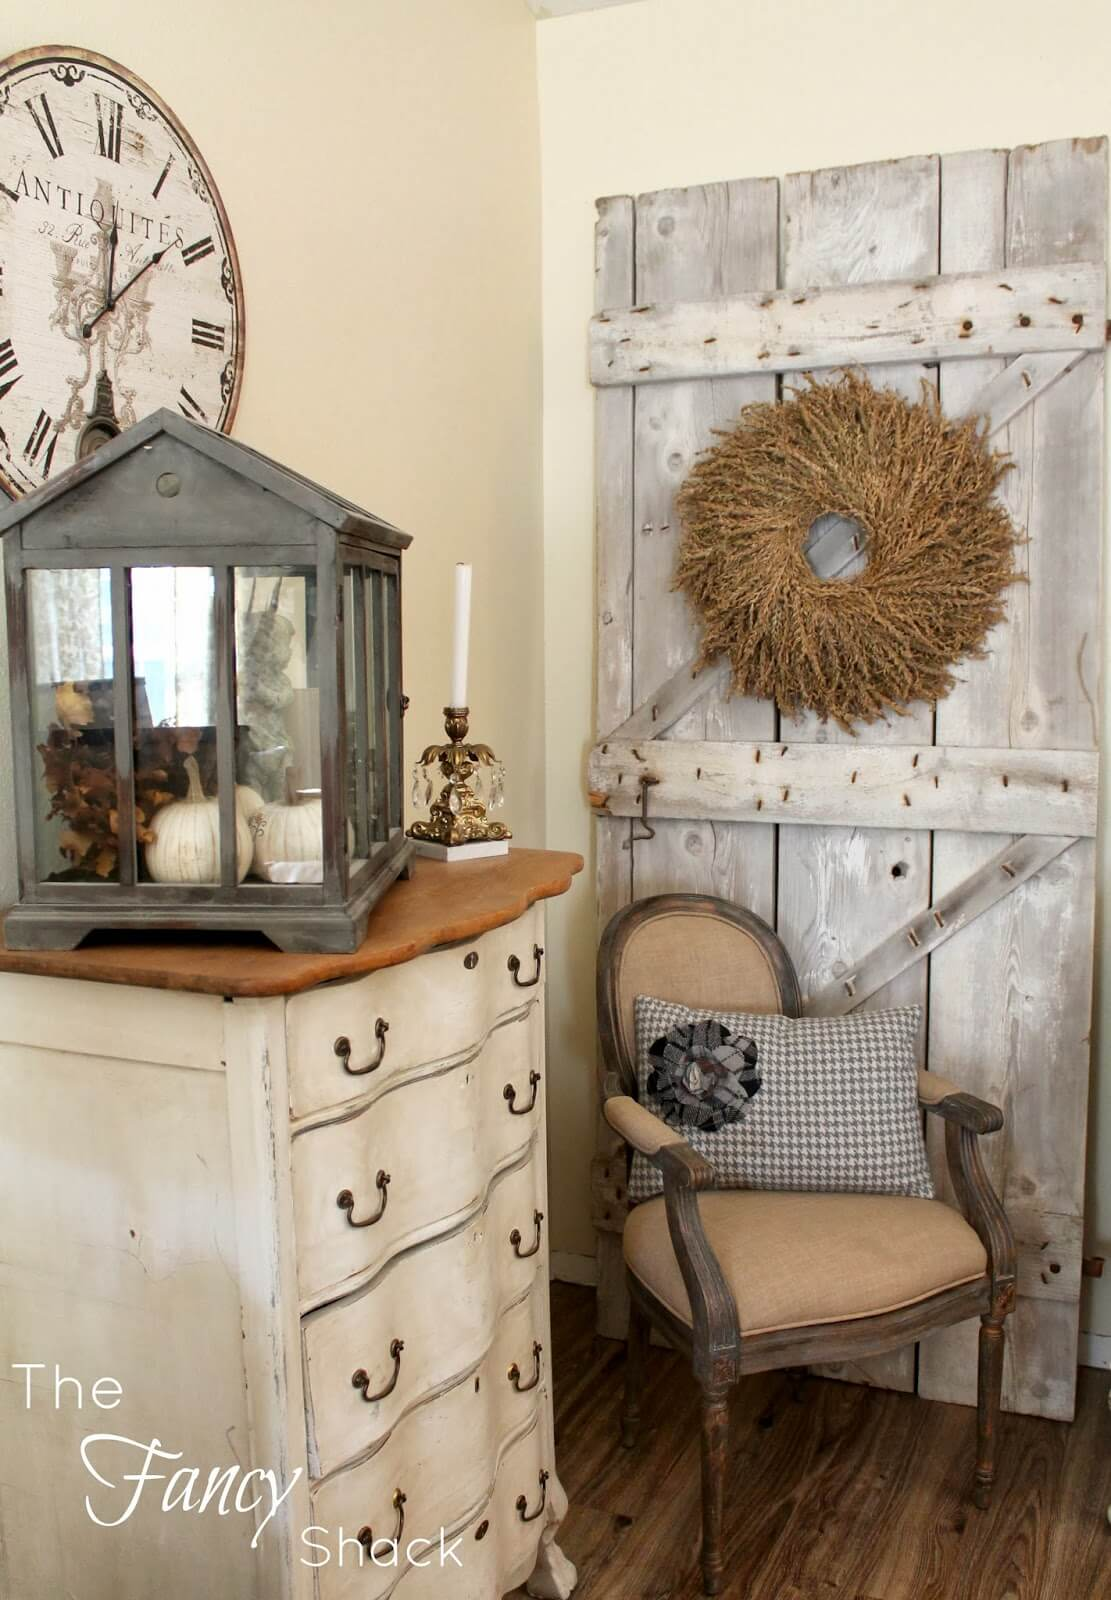 35+ Best Rustic Home Decor Ideas and Designs for 2020